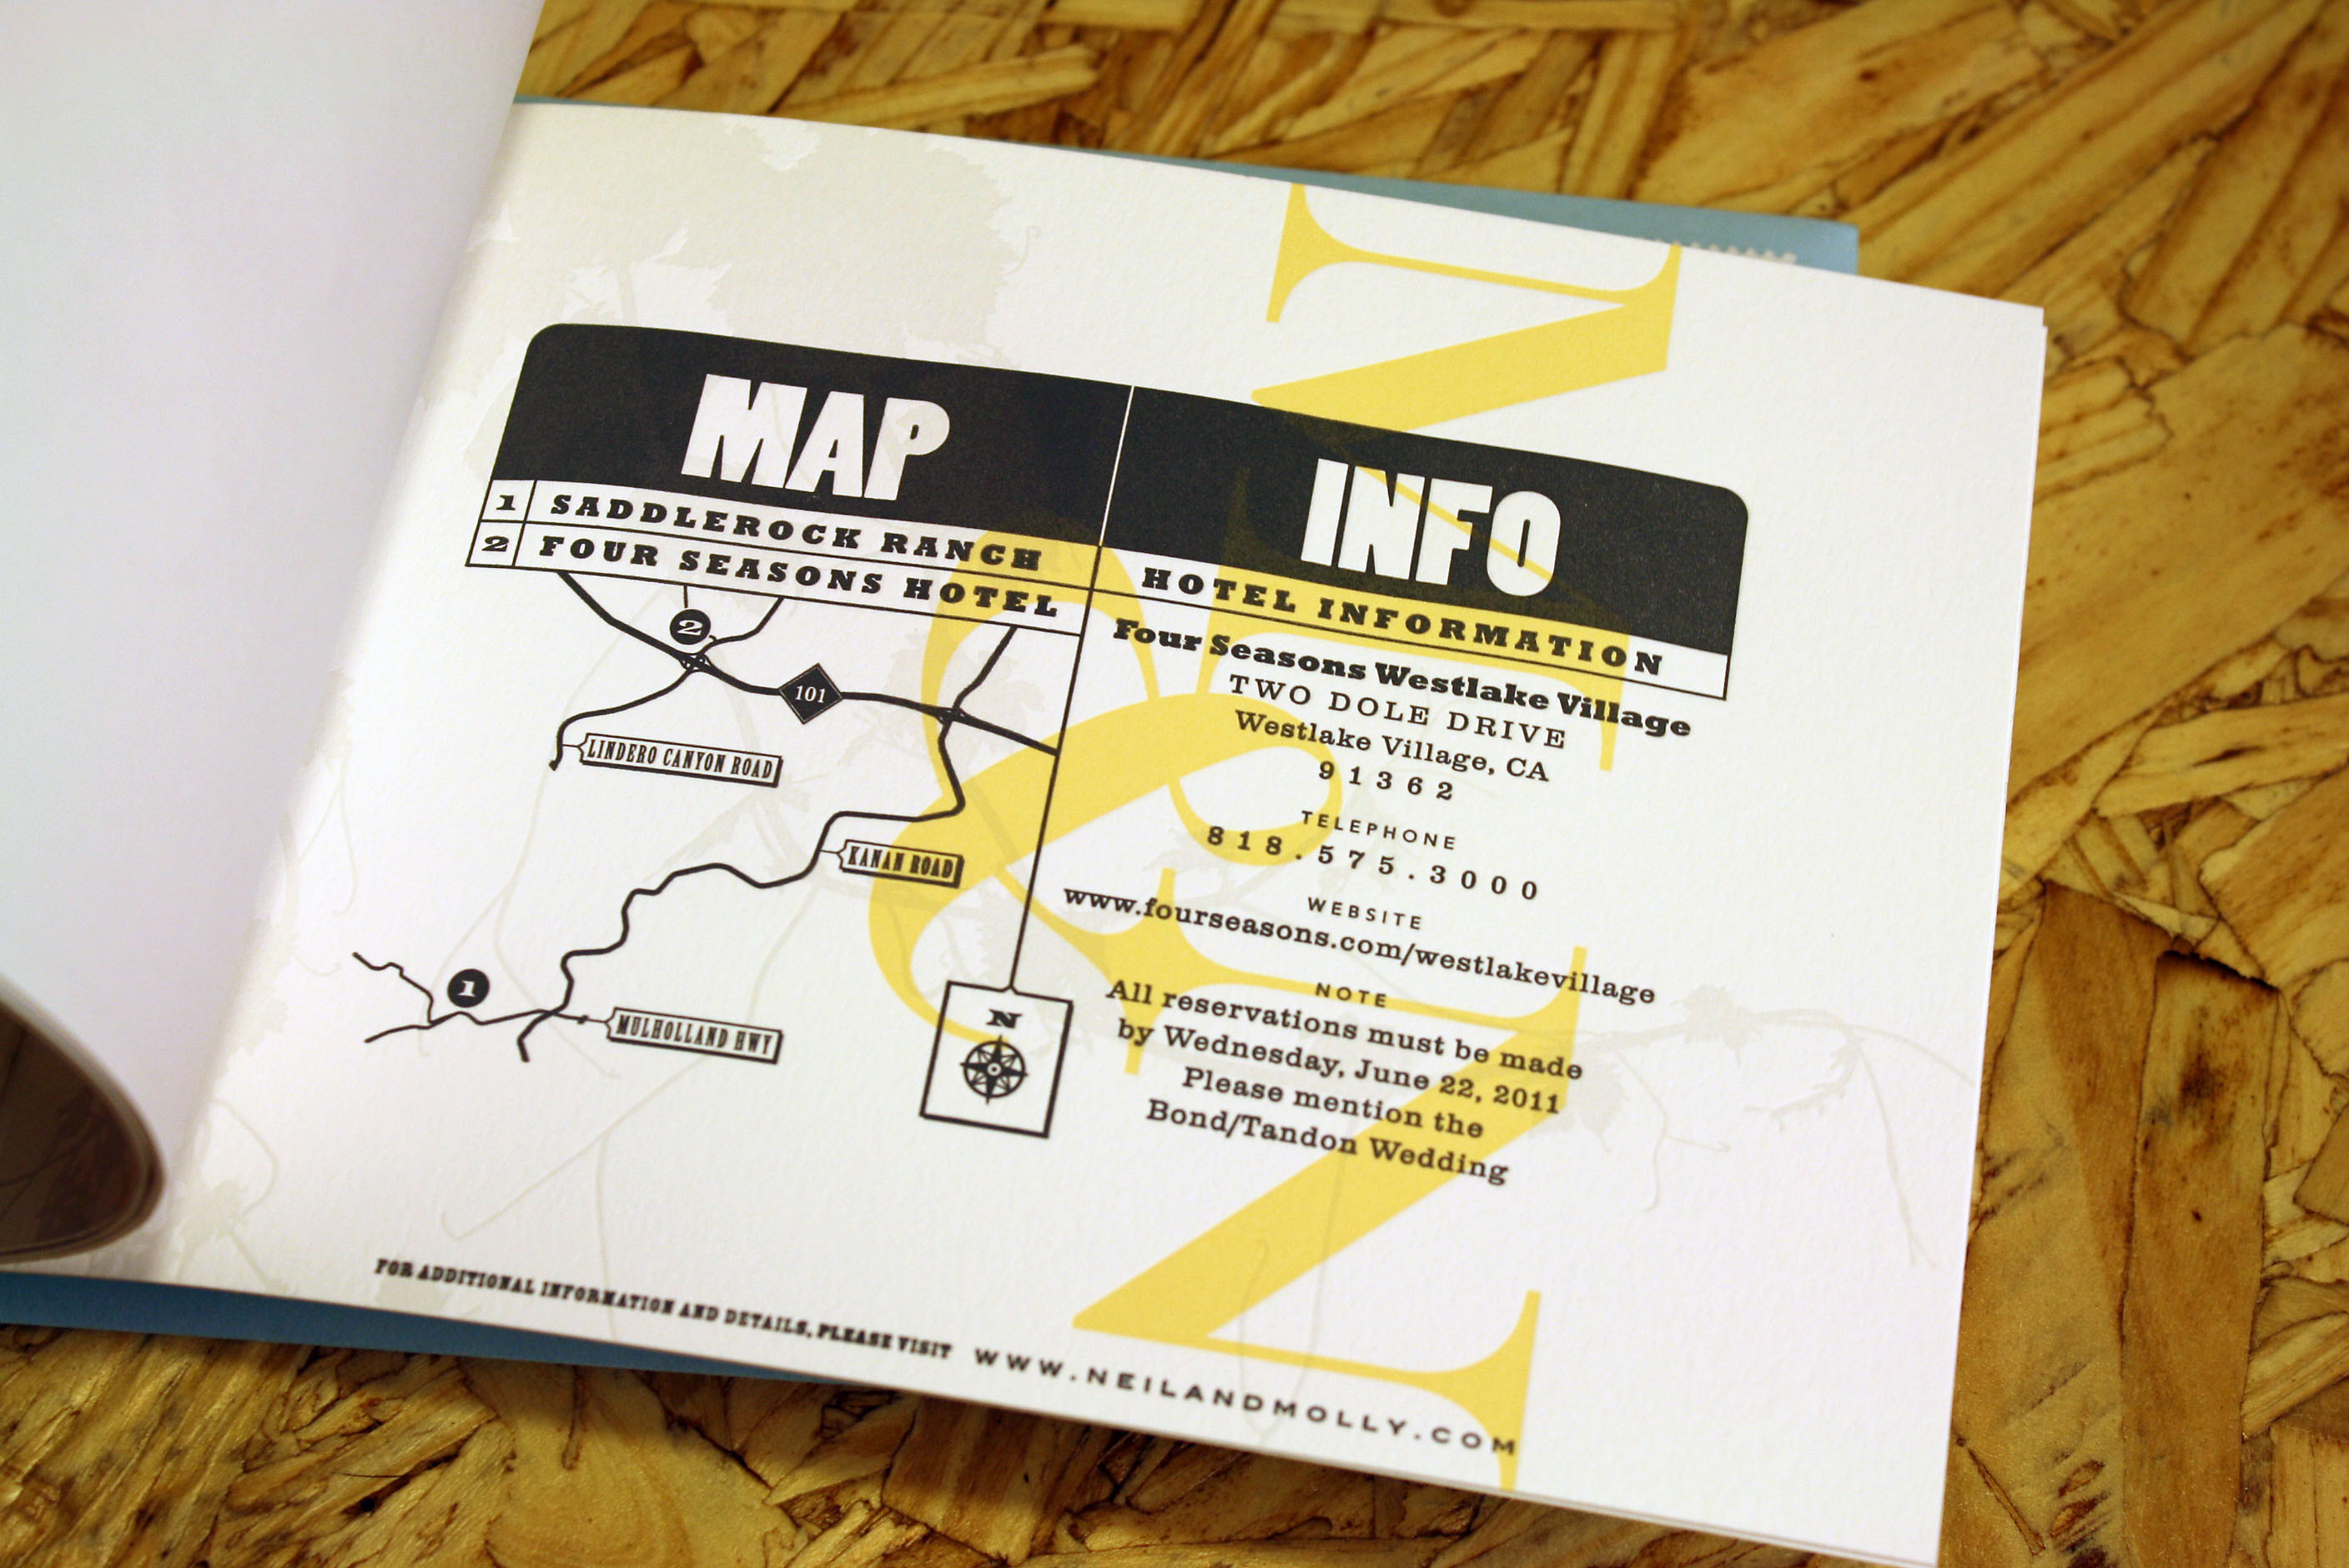 Printable Map Directions For Invitations Lovely Wedding Invite Directions Template Unique Wedding Invitations Cool